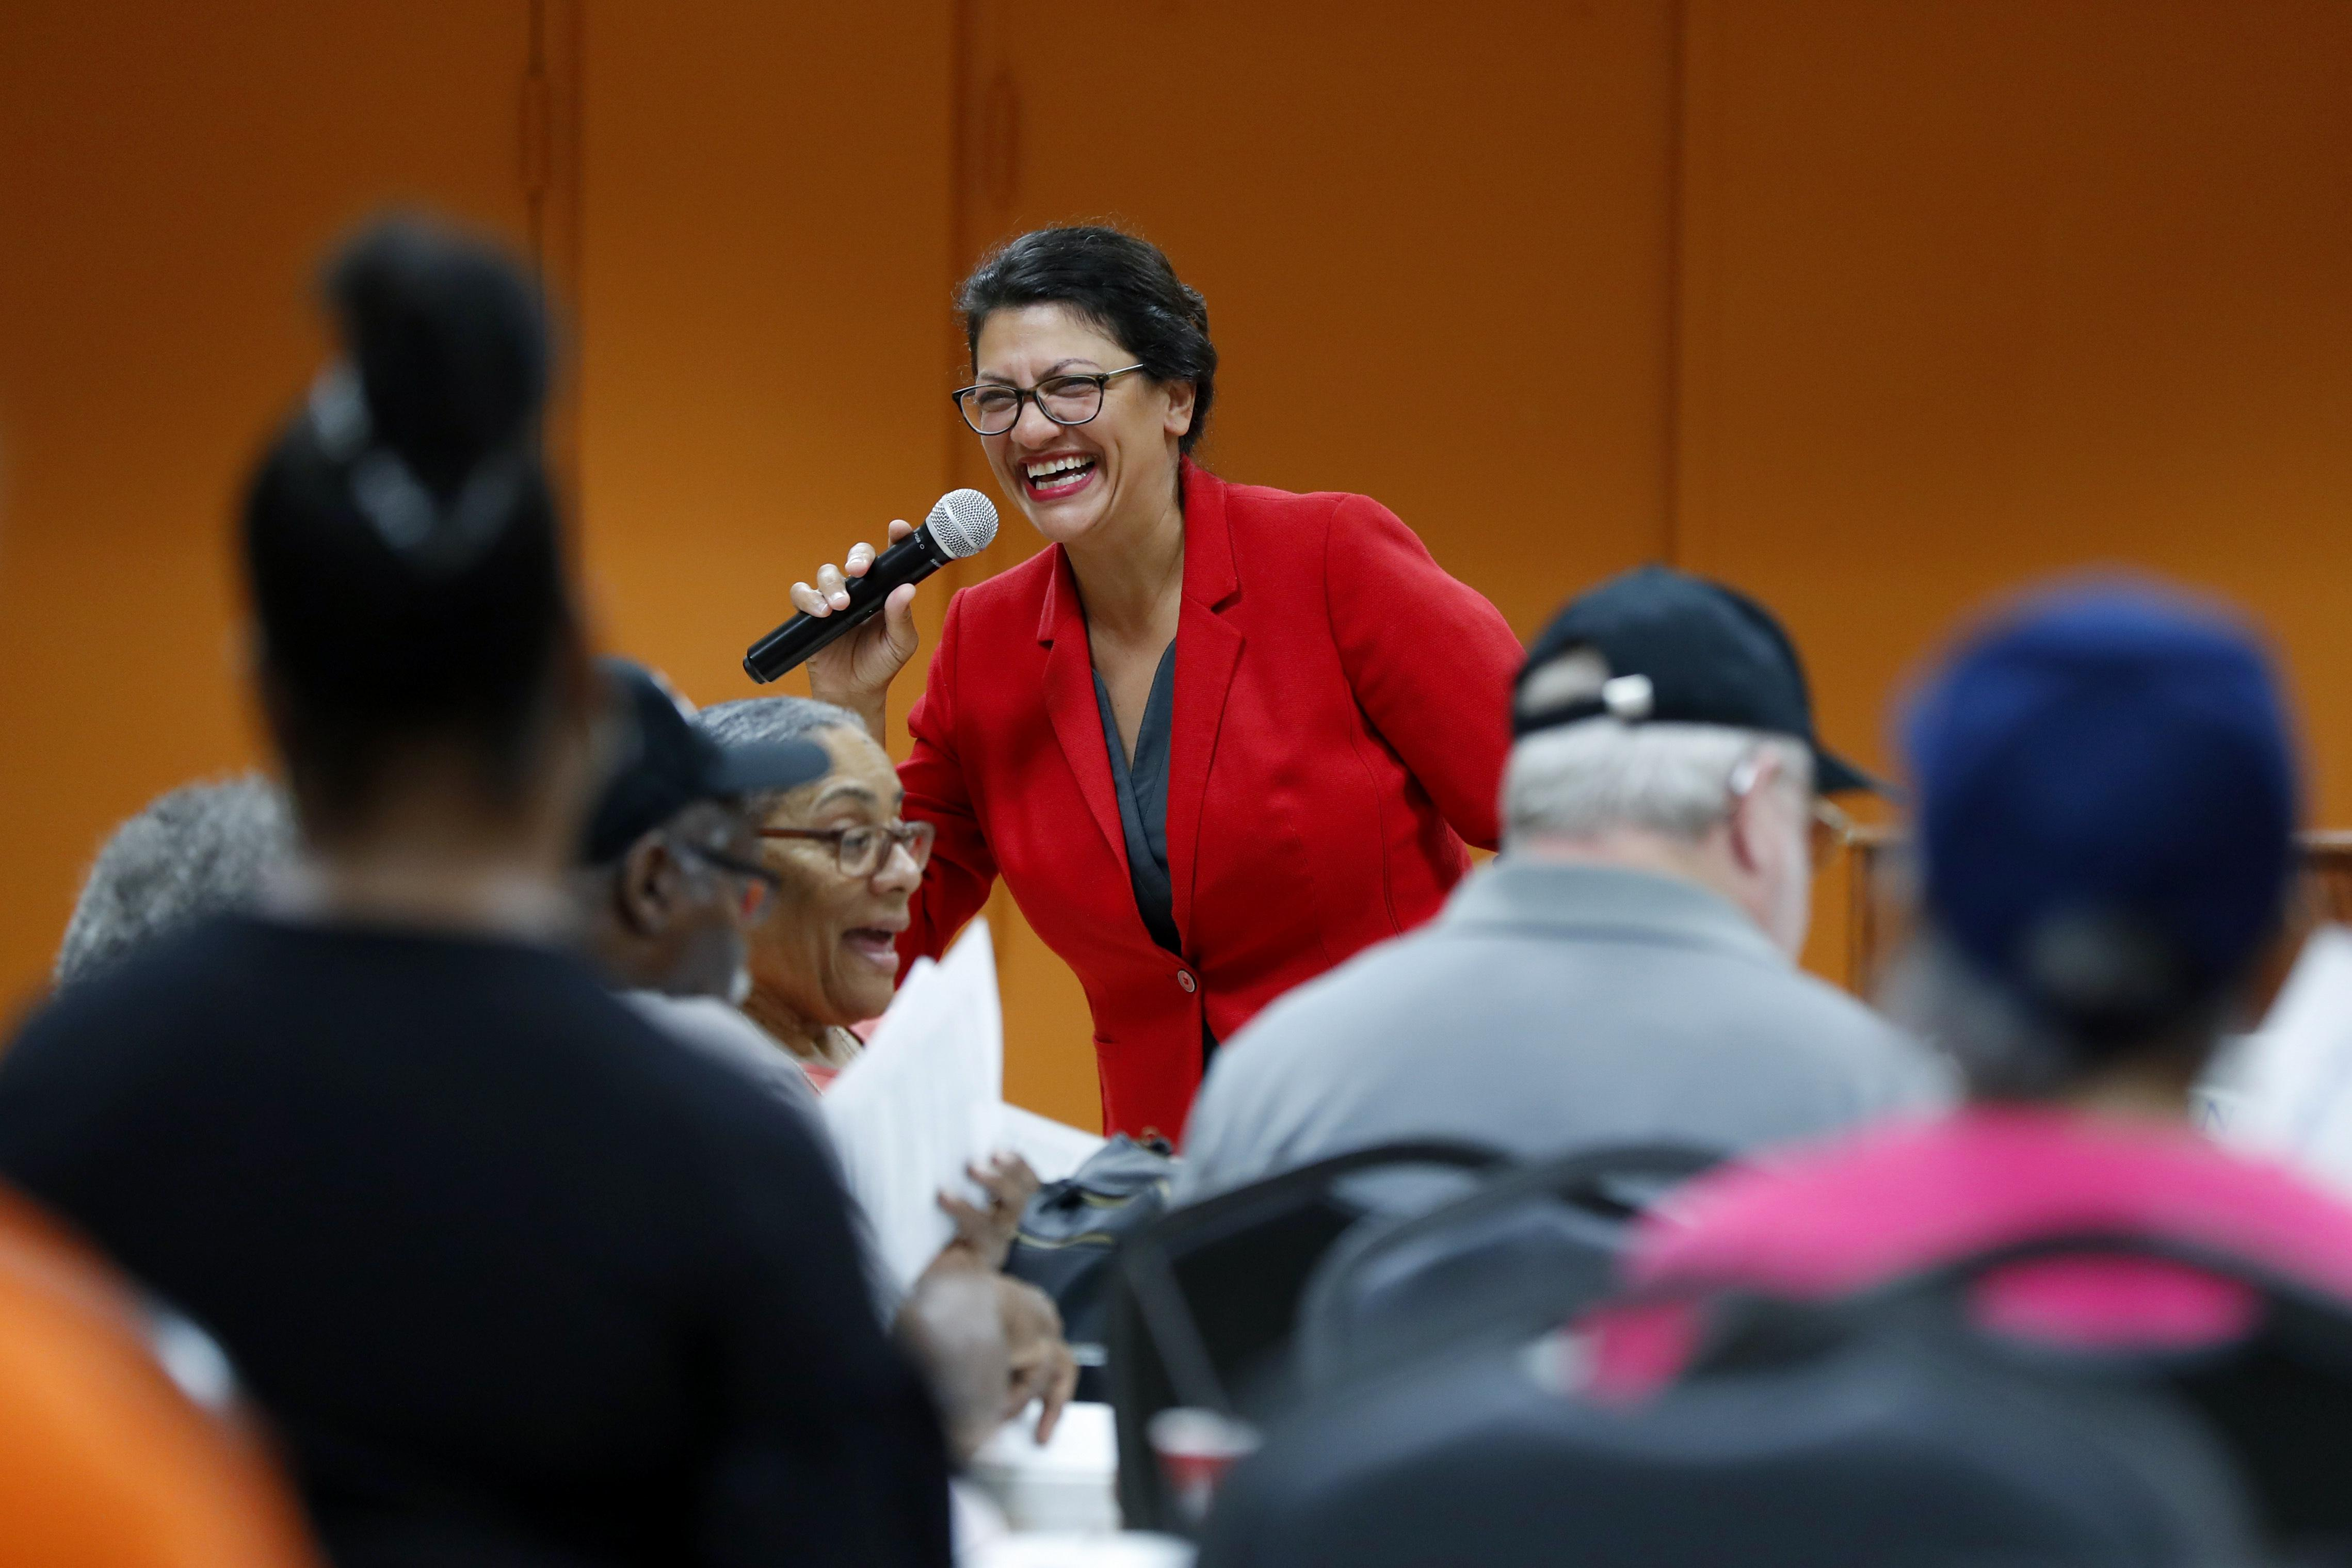 Rashida Tlaib, a troublemaker who's scoring BDS points